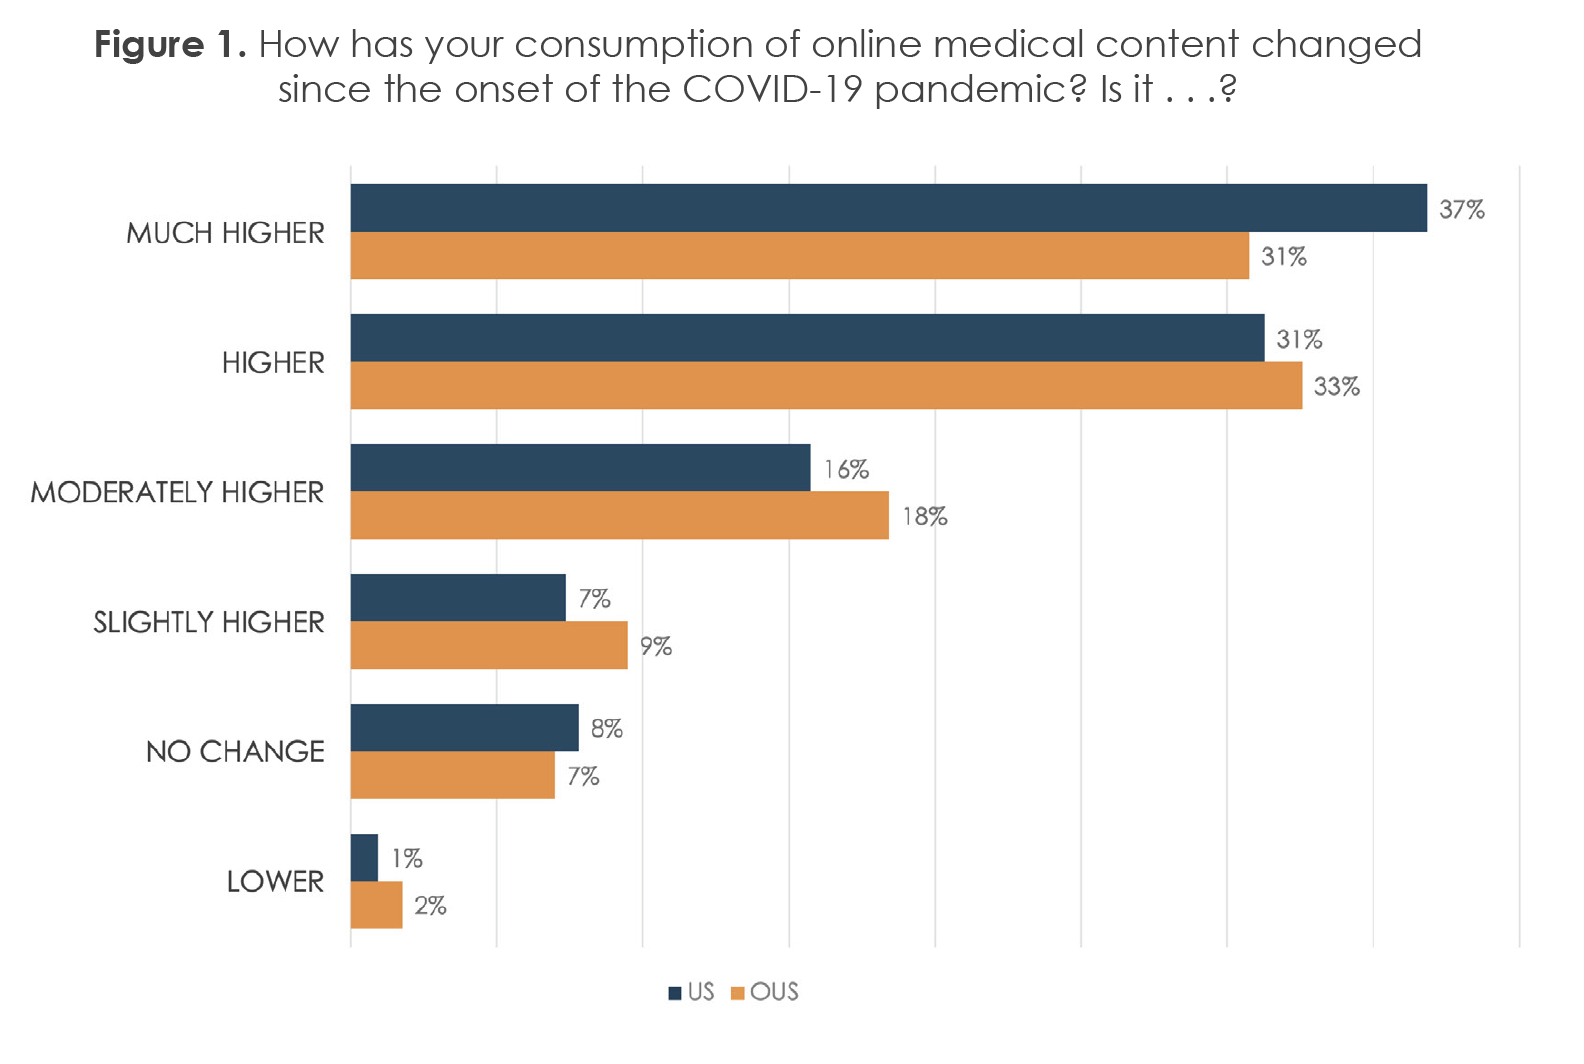 Figure 1. How has your consumption of online medical content changed since the onset of the COVID-19 pandemic? Is it . . .?